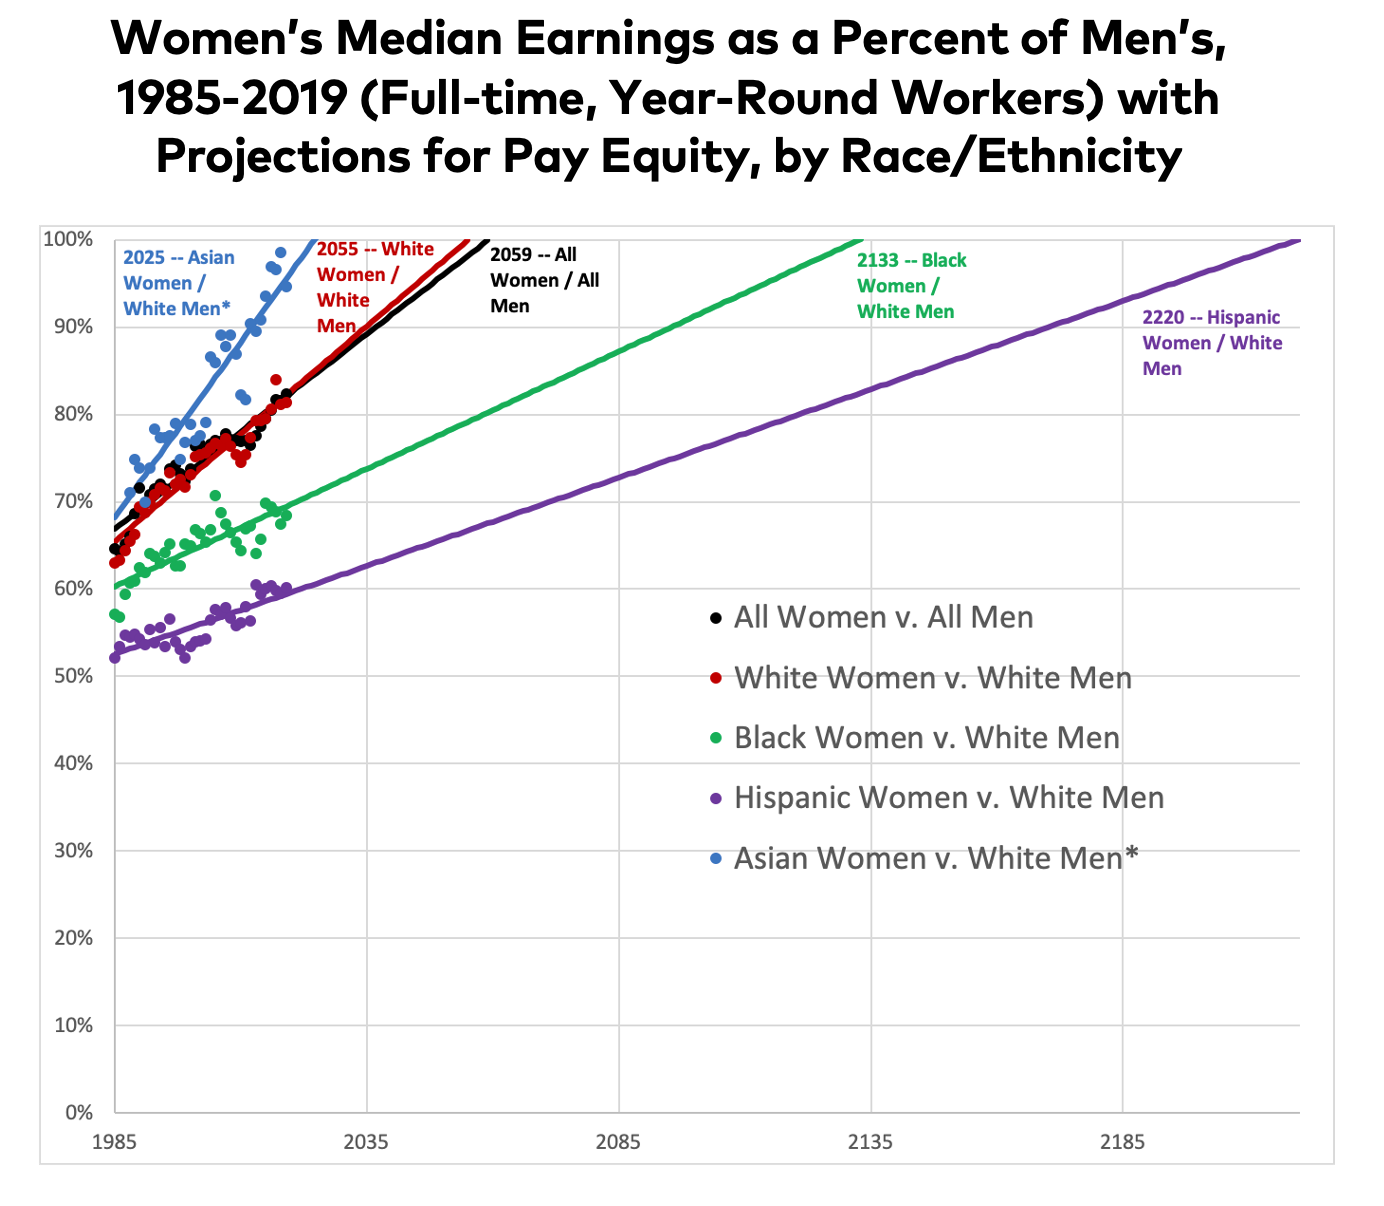 2020 Wage Gap projections for women of color